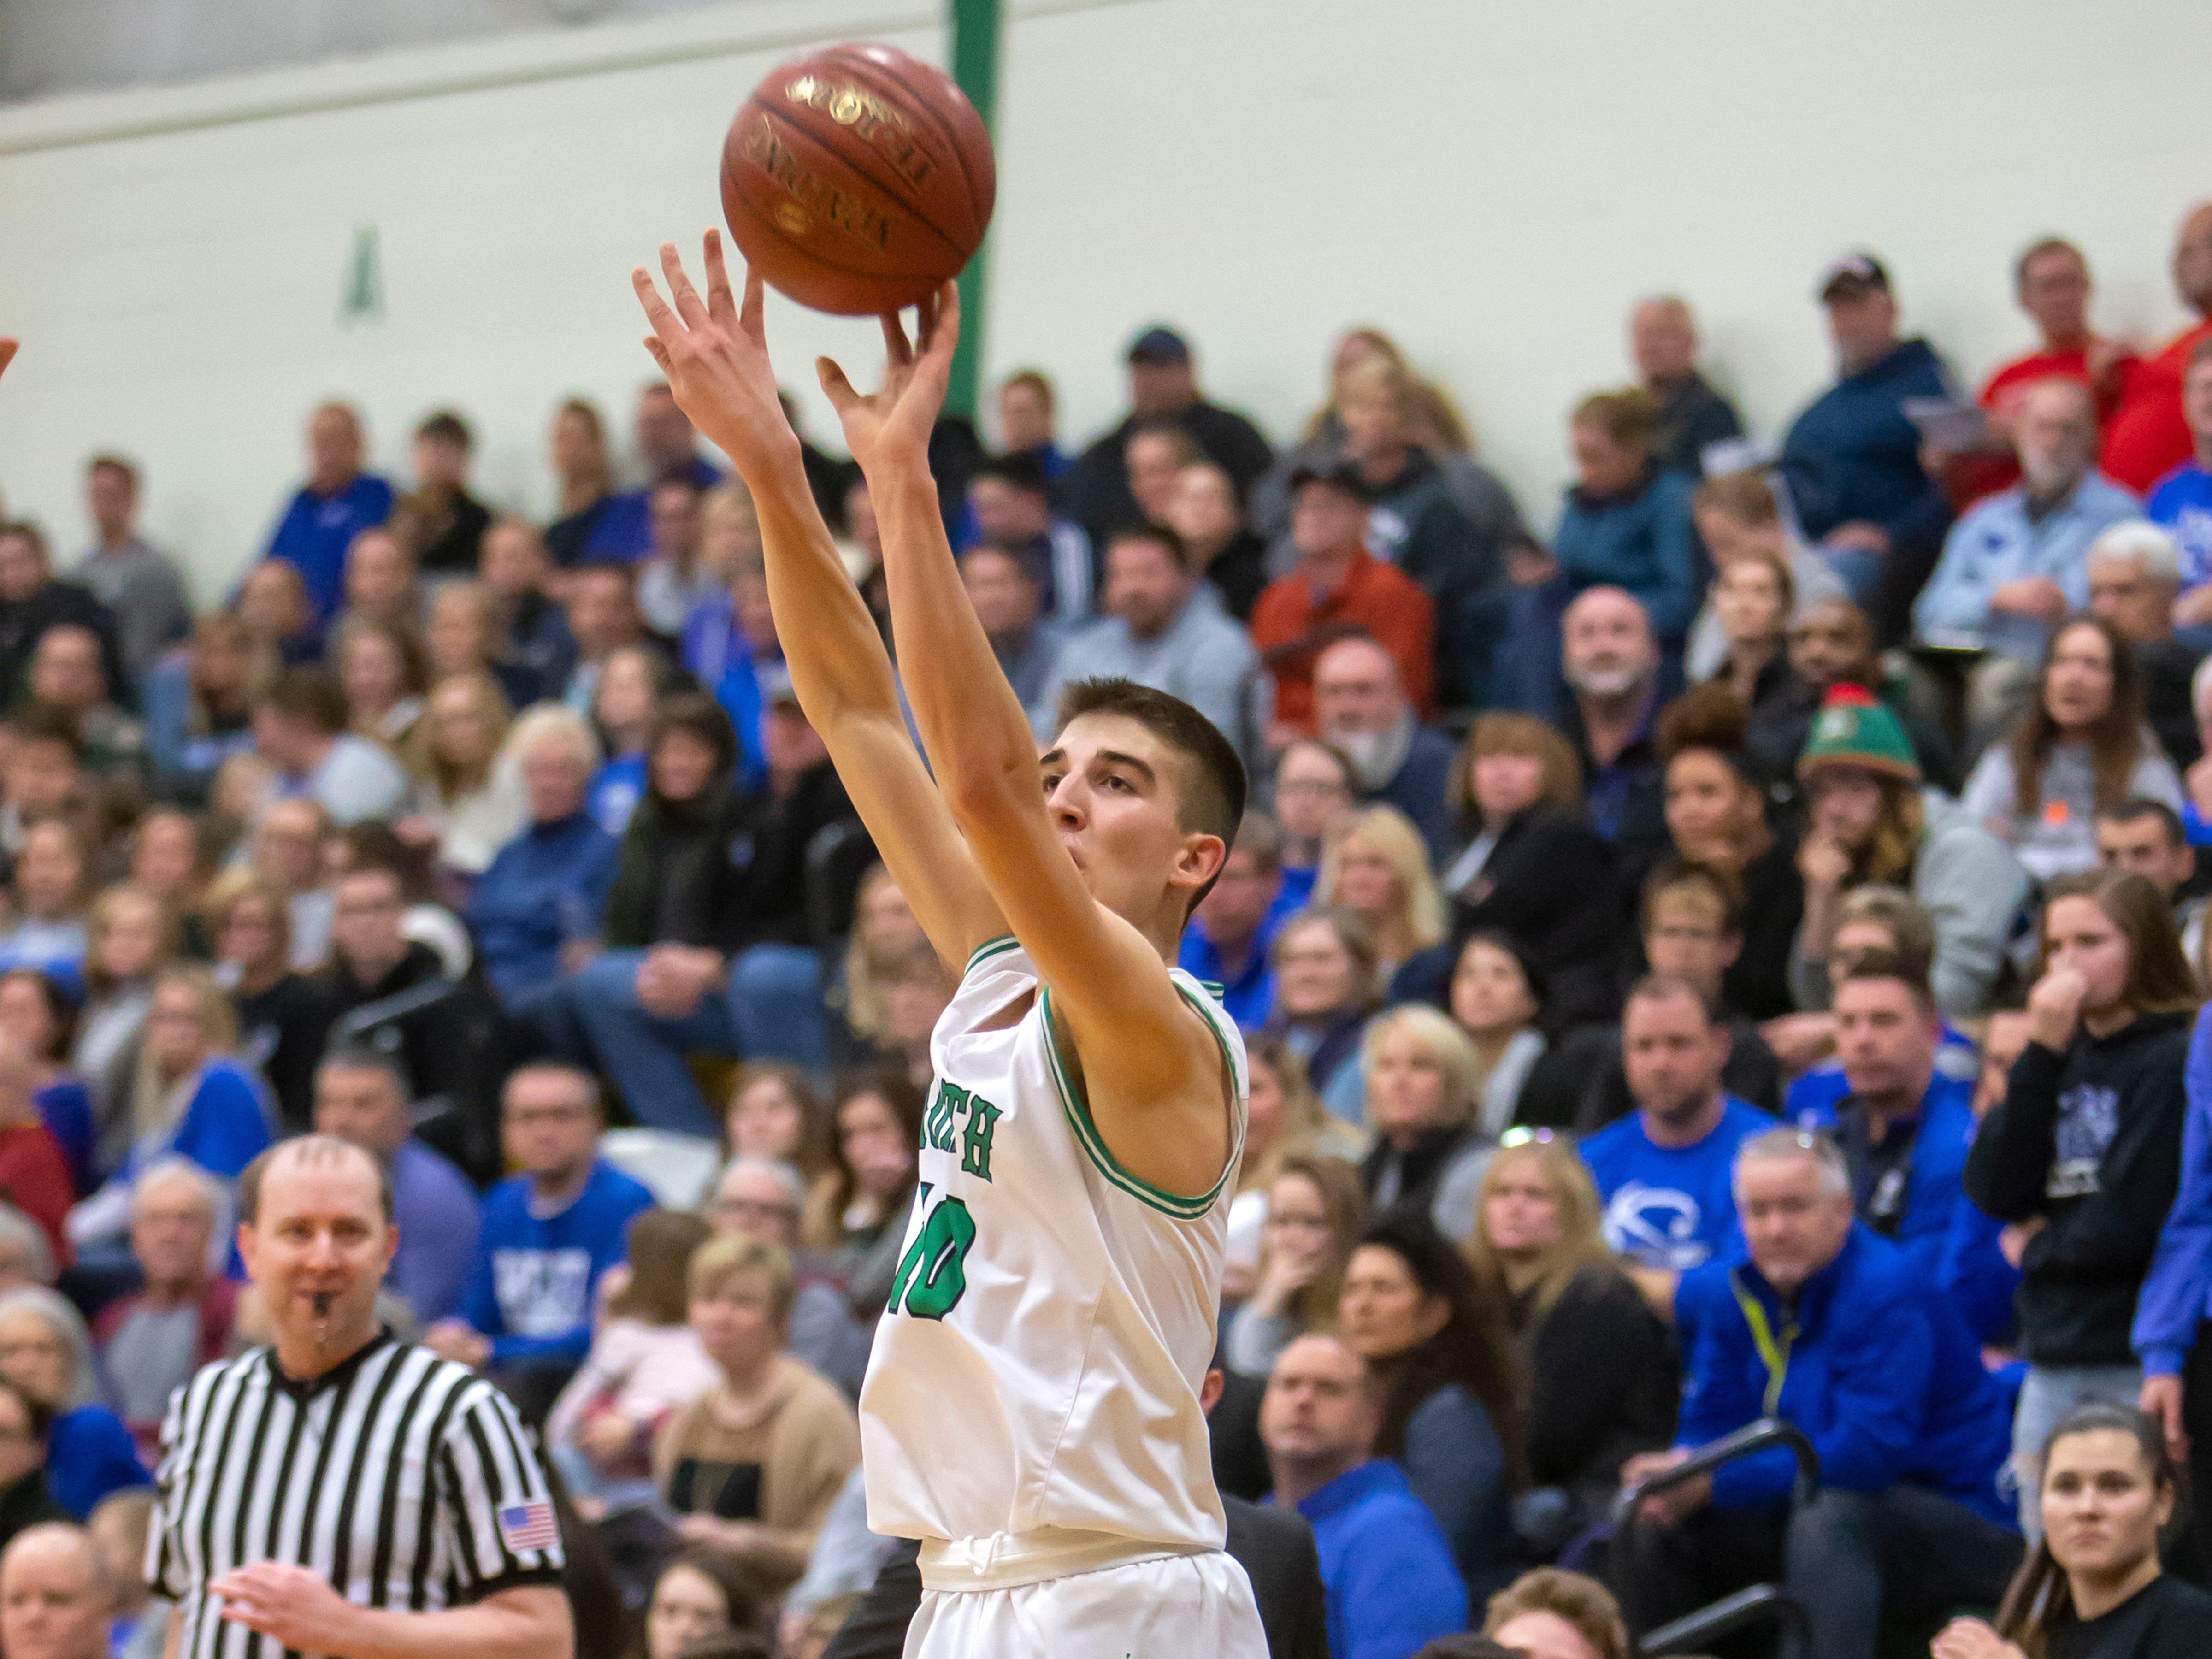 Oshkosh North's Josh Dilling shoots a 3-pointer during a game against the Wildcats at the Oshkosh North High School on Tuesday, Jan. 8, 2019.